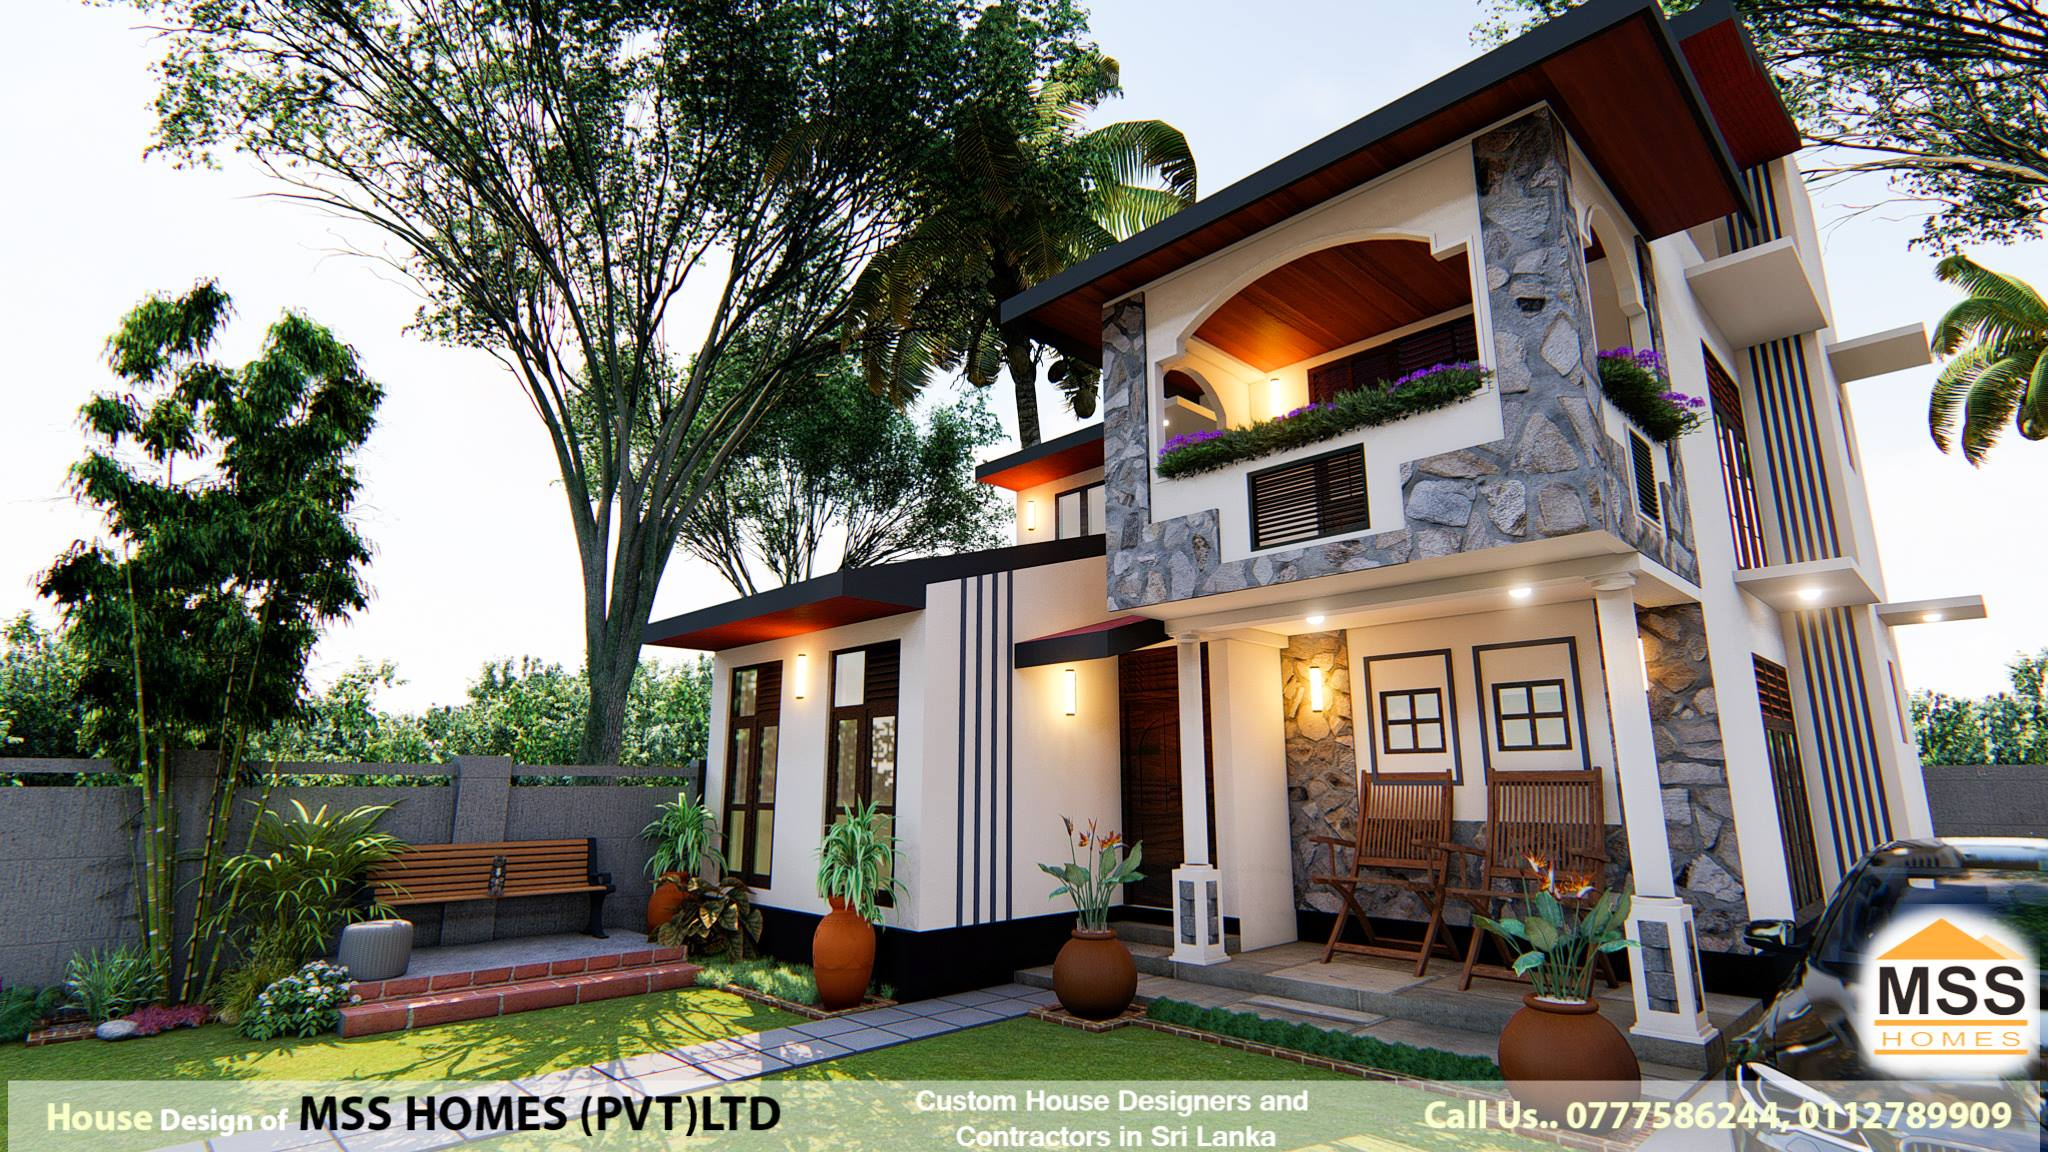 House Builders In Sri Lanka Home House Design Construction Build